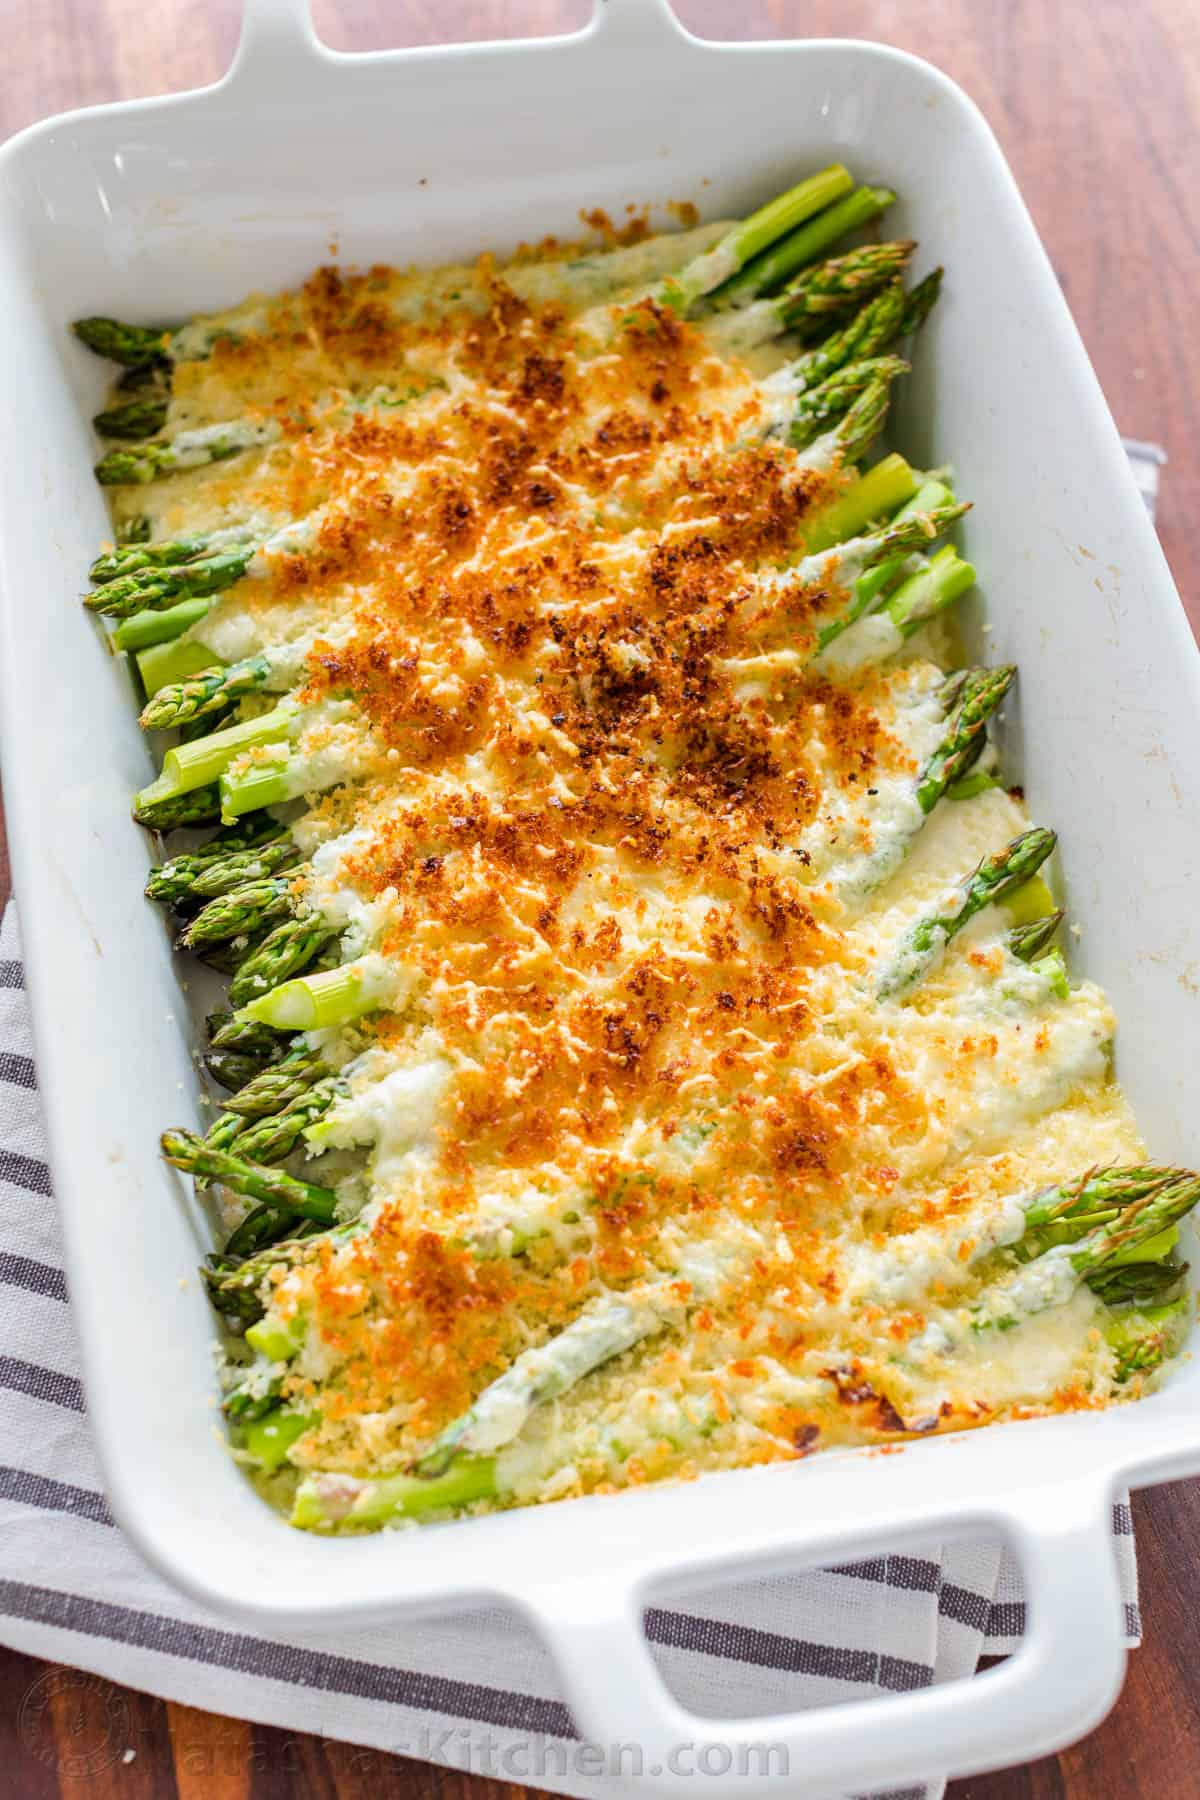 Asparagus Casserole Video Natashaskitchen Com